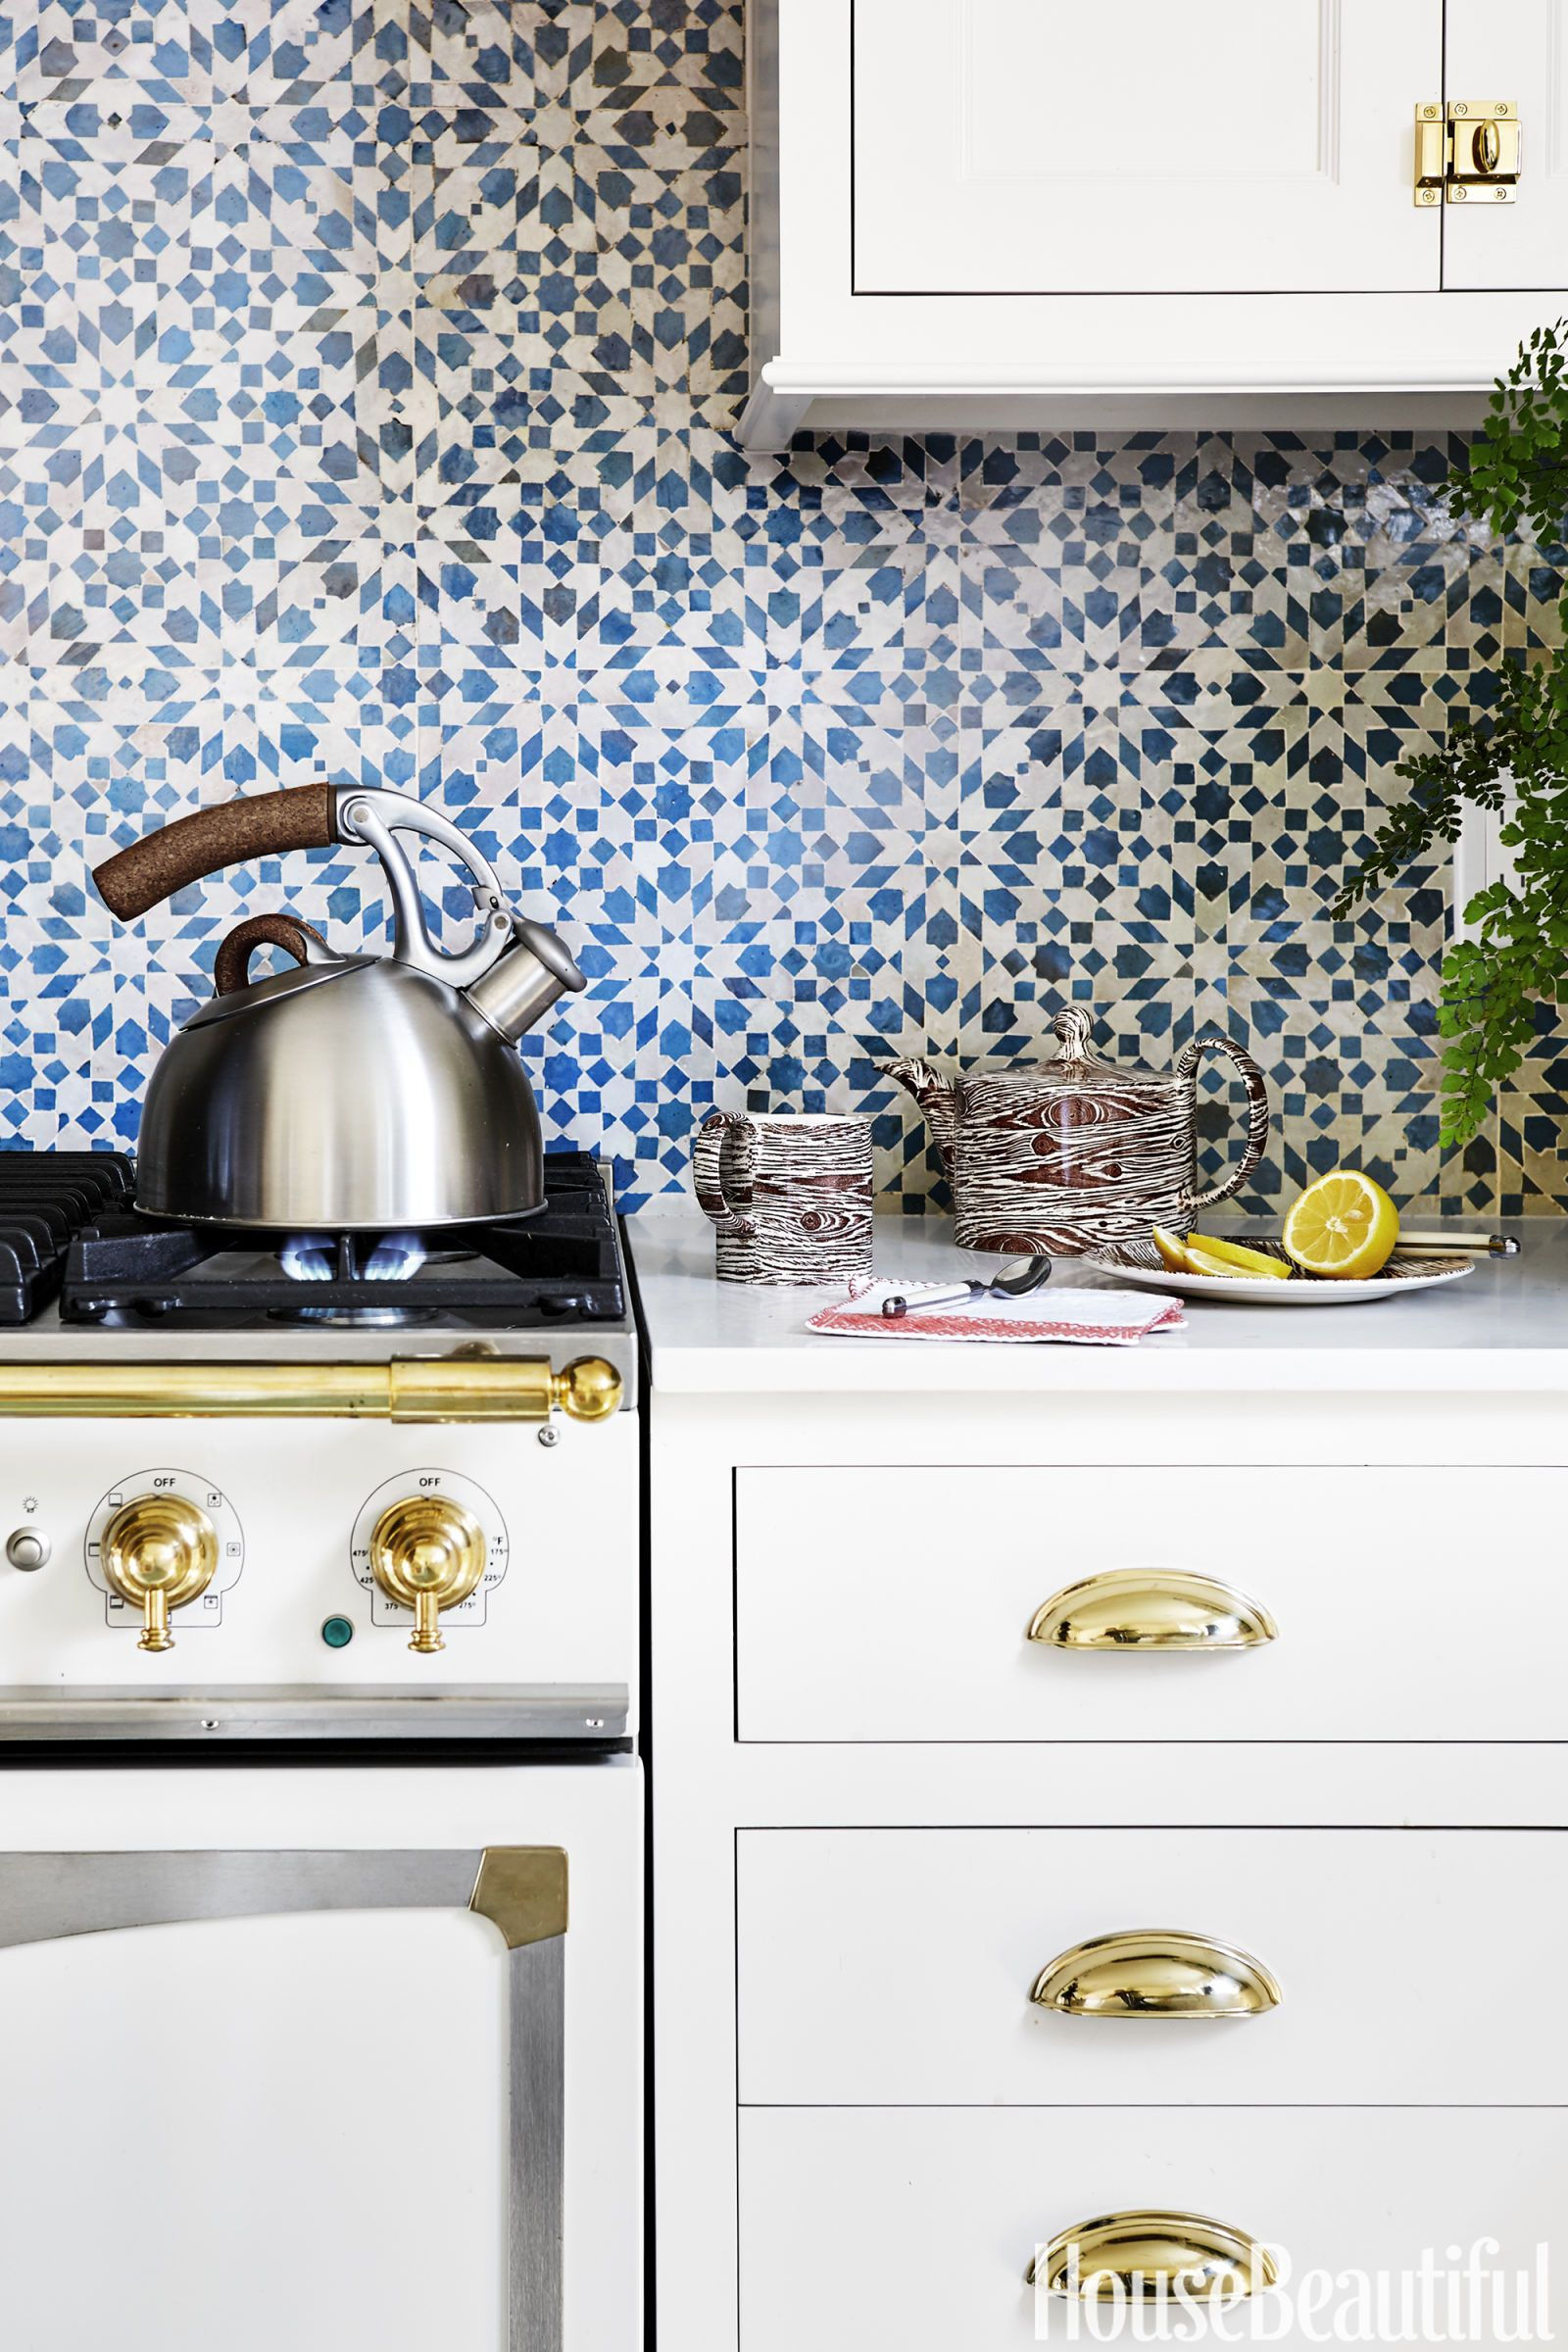 Kitchen Tiles York This New York Home Mixes Patterns To The Max Home